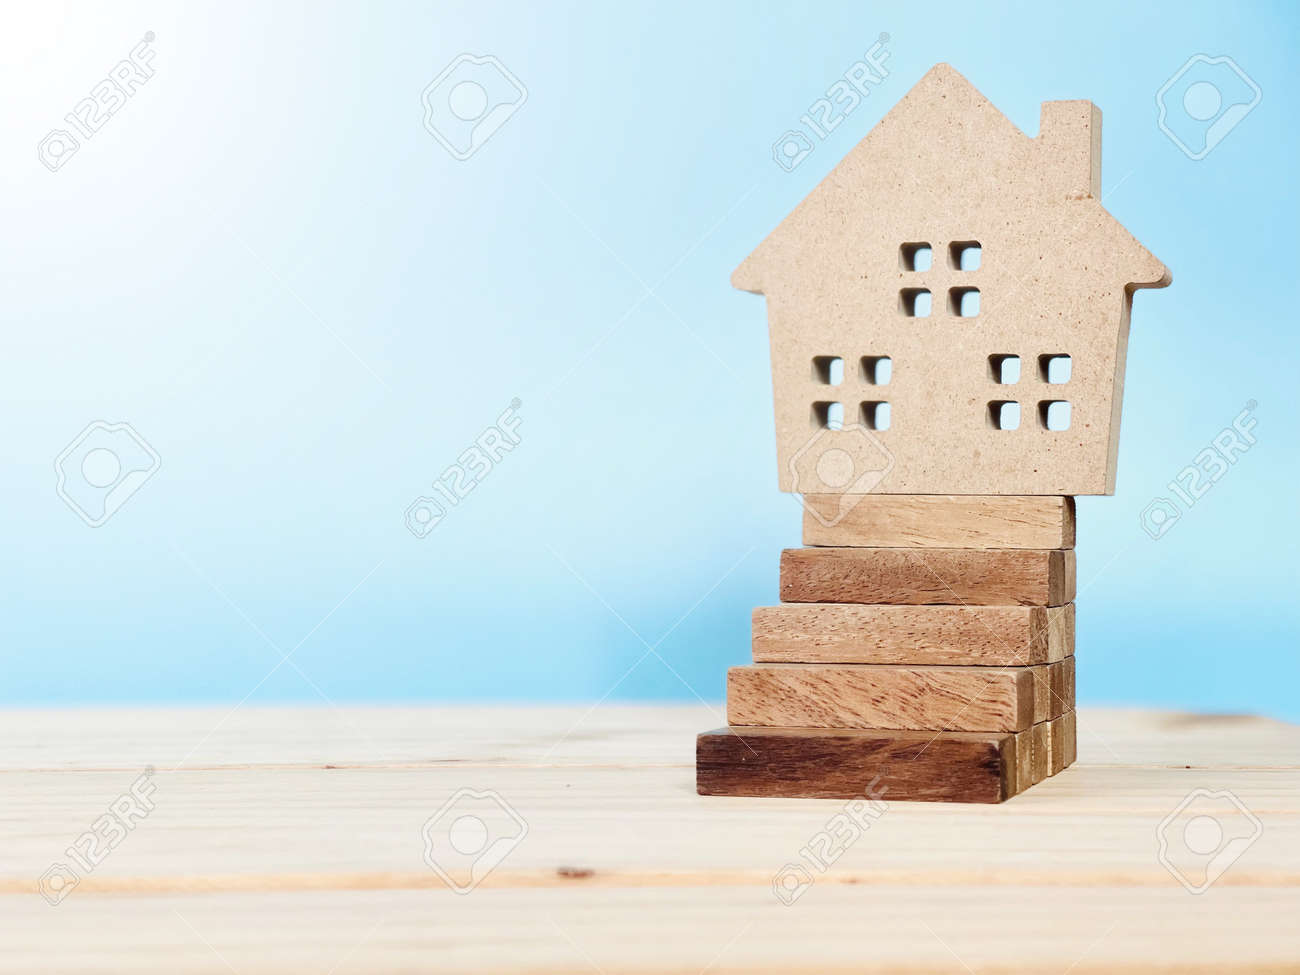 Wood house model on wood block stacking as step stair - 168796805